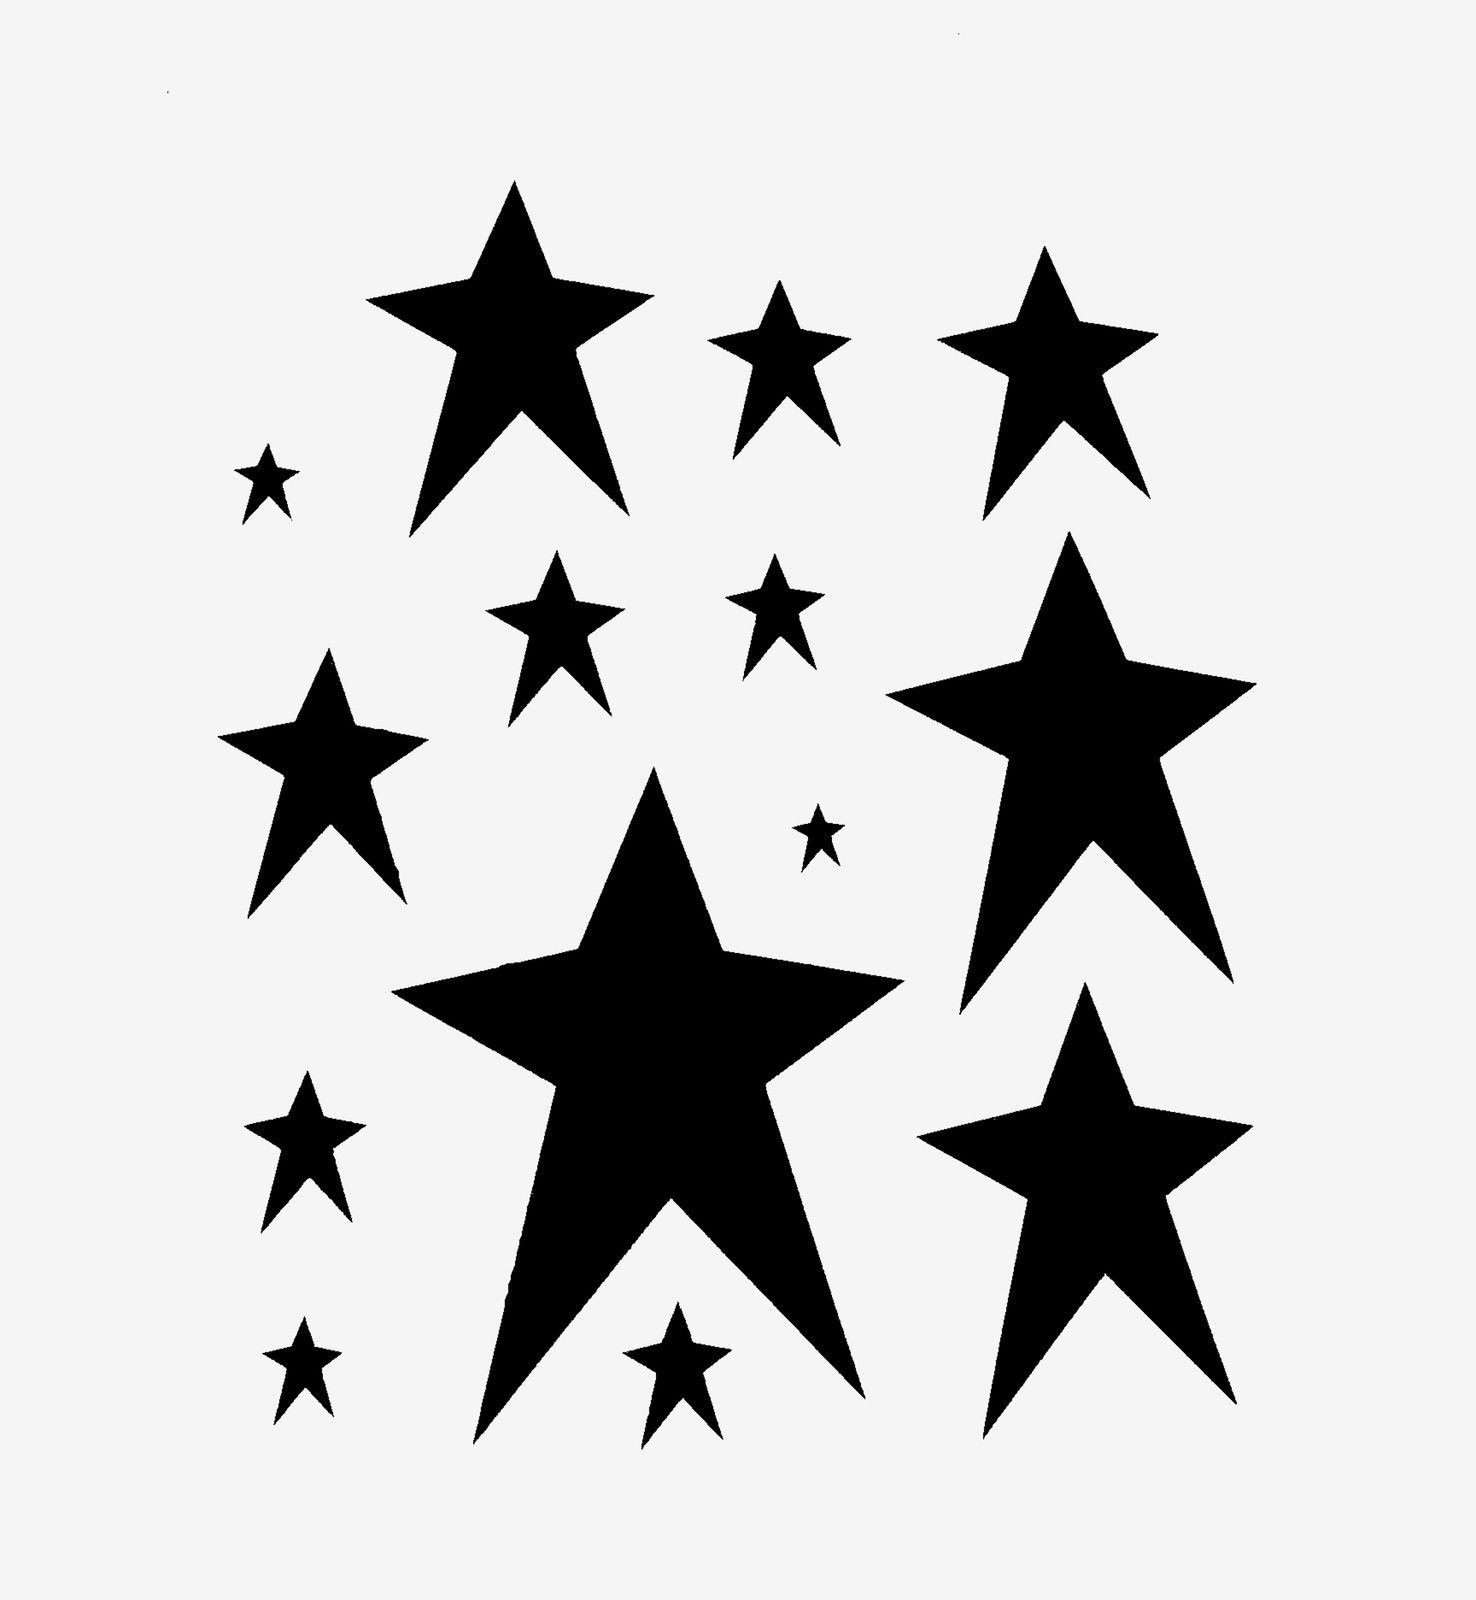 Rustic stars for crafts - Primitive Star Stencil Many Stars Stencils Celestial Craft Template 8 X 10 New Picclick